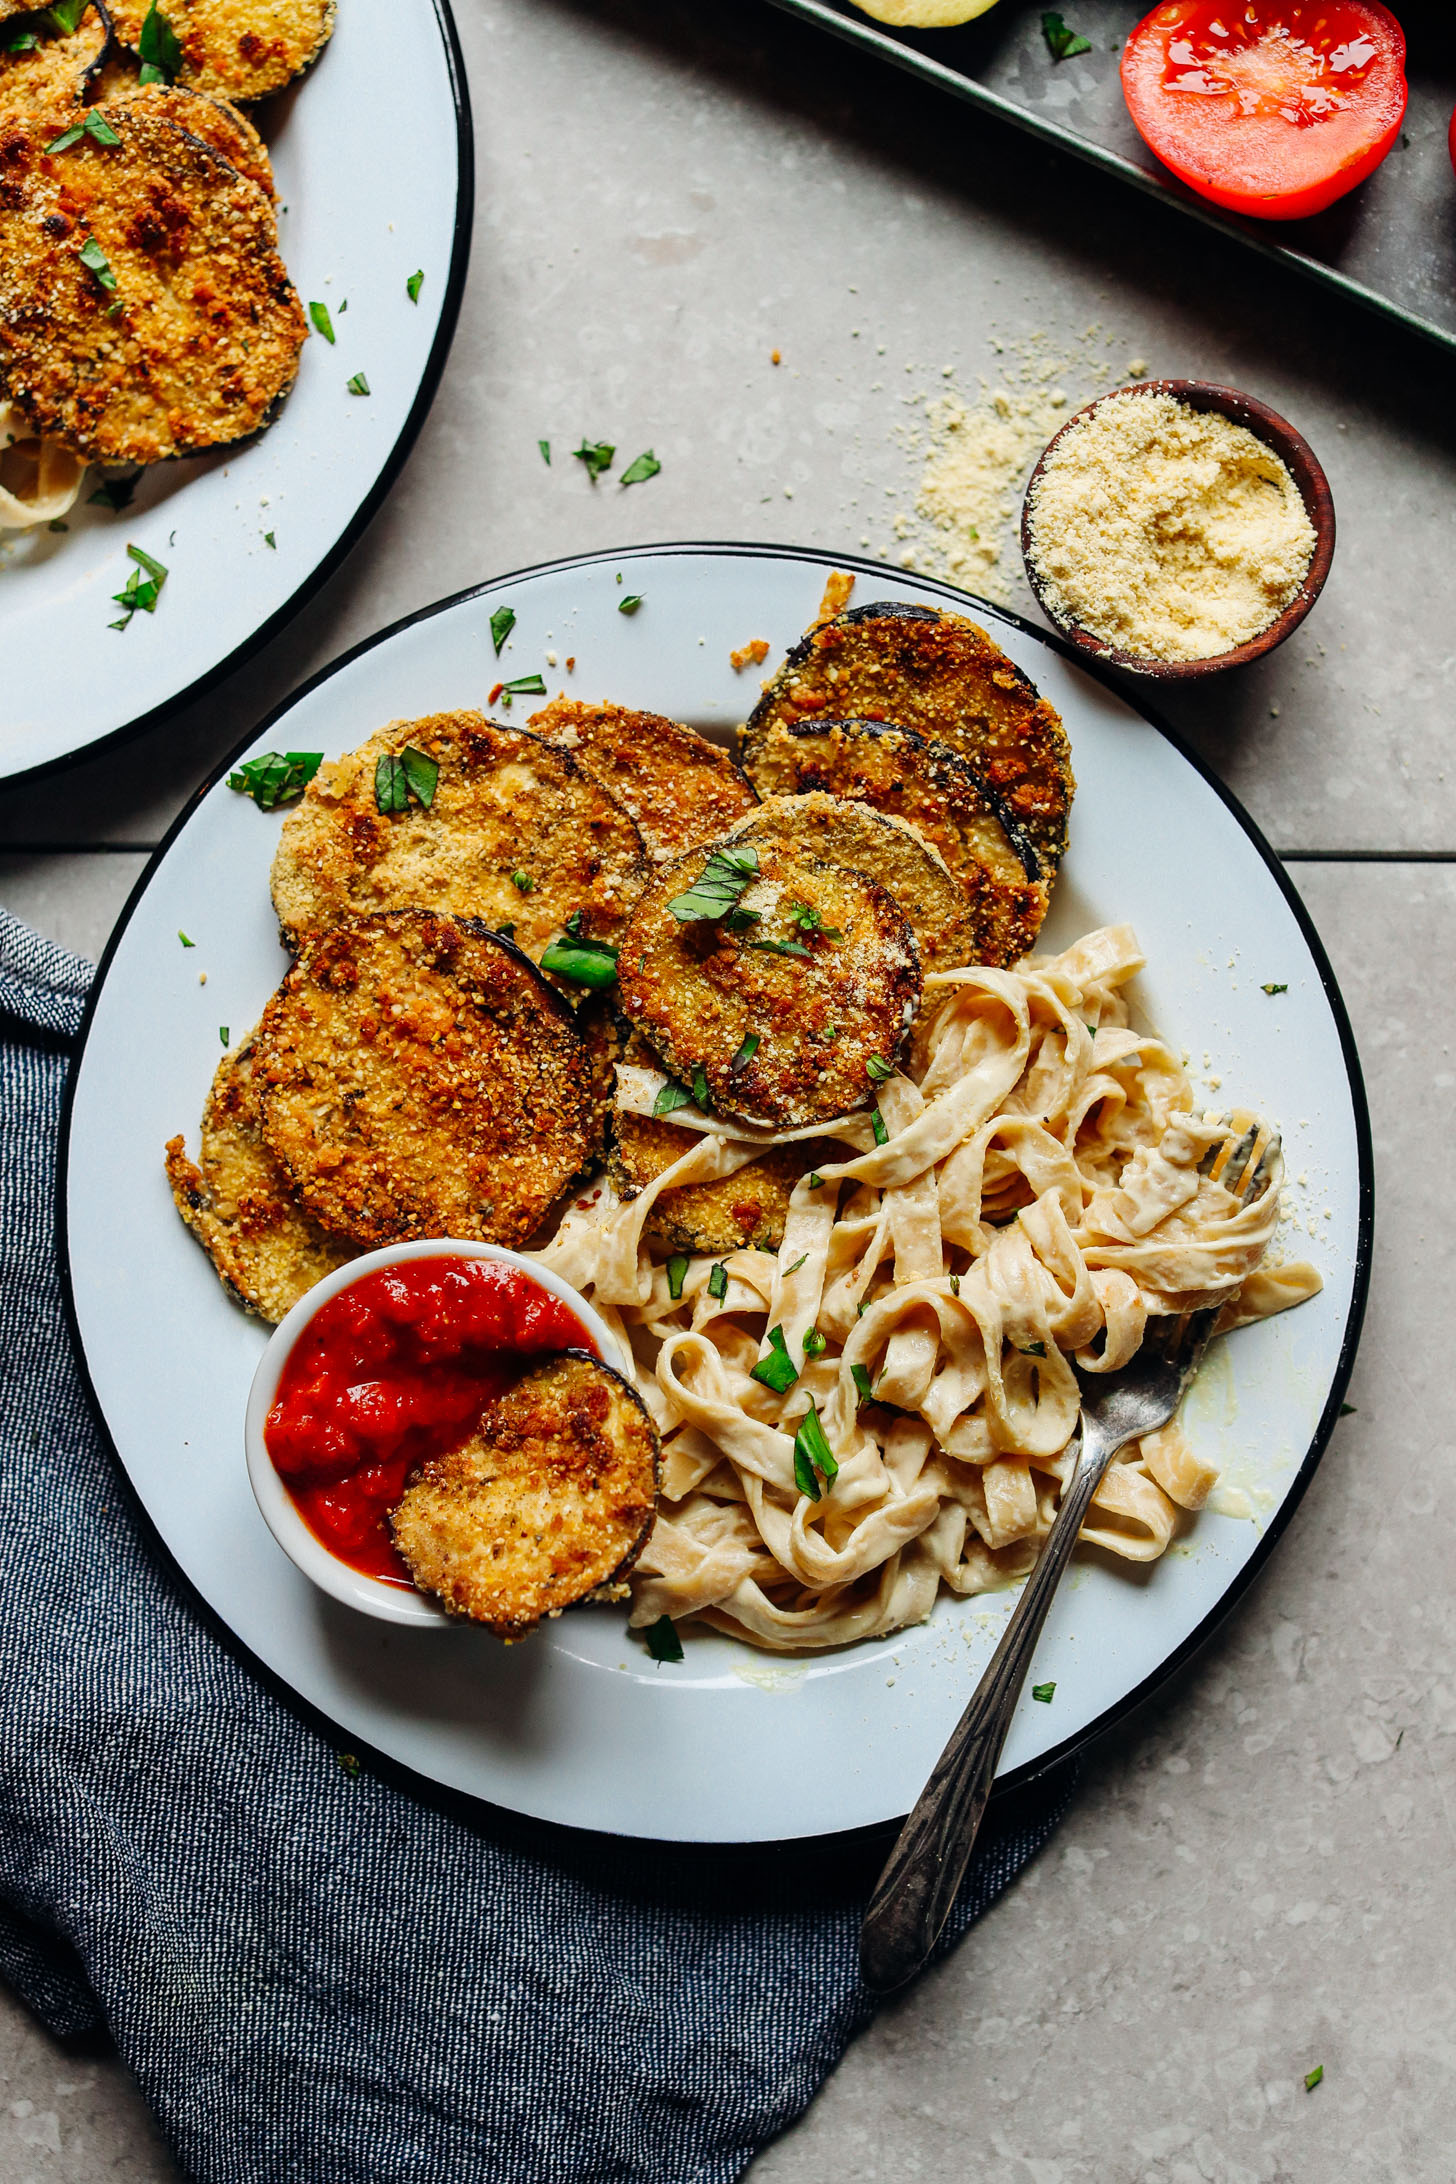 A big plate of gluten-free vegan comfort food including Crispy Eggplant Parmesan with marinara dipping sauce and a side of gluten-free pasta